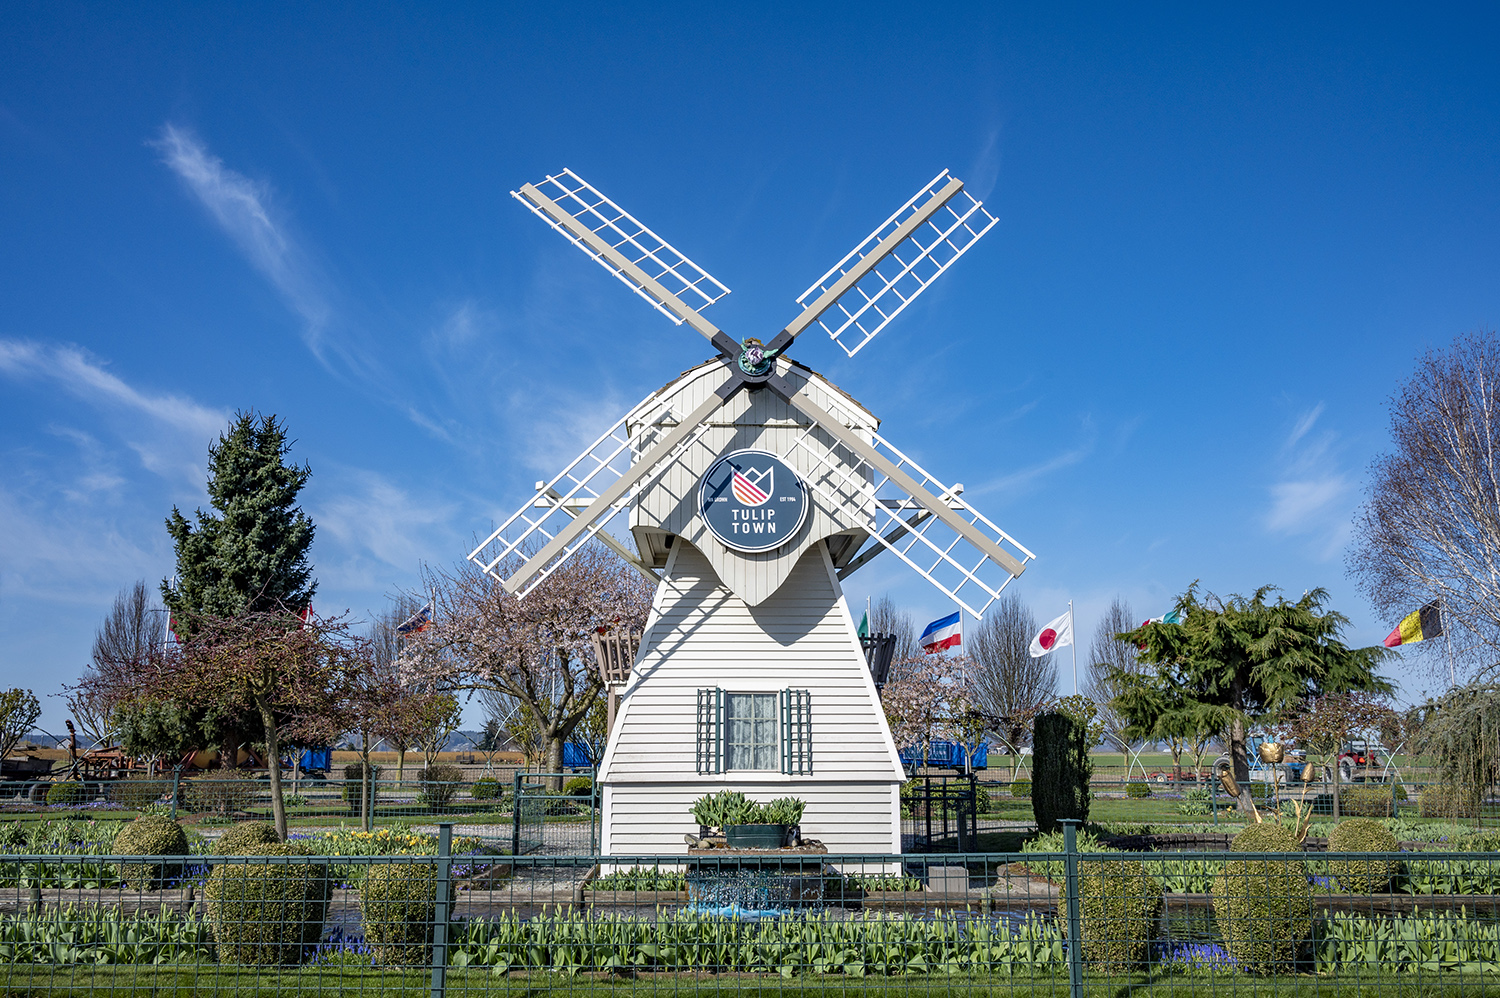 It's hard to say you've been to Tulip Town if you don't take a photo of the classic, Dutch-inspired windmill. The white, spinning structure rotates around slowly just like the windmills of Holland that were used for water drainage and grinding grains. (Rachael Jones / Seattle Refined)